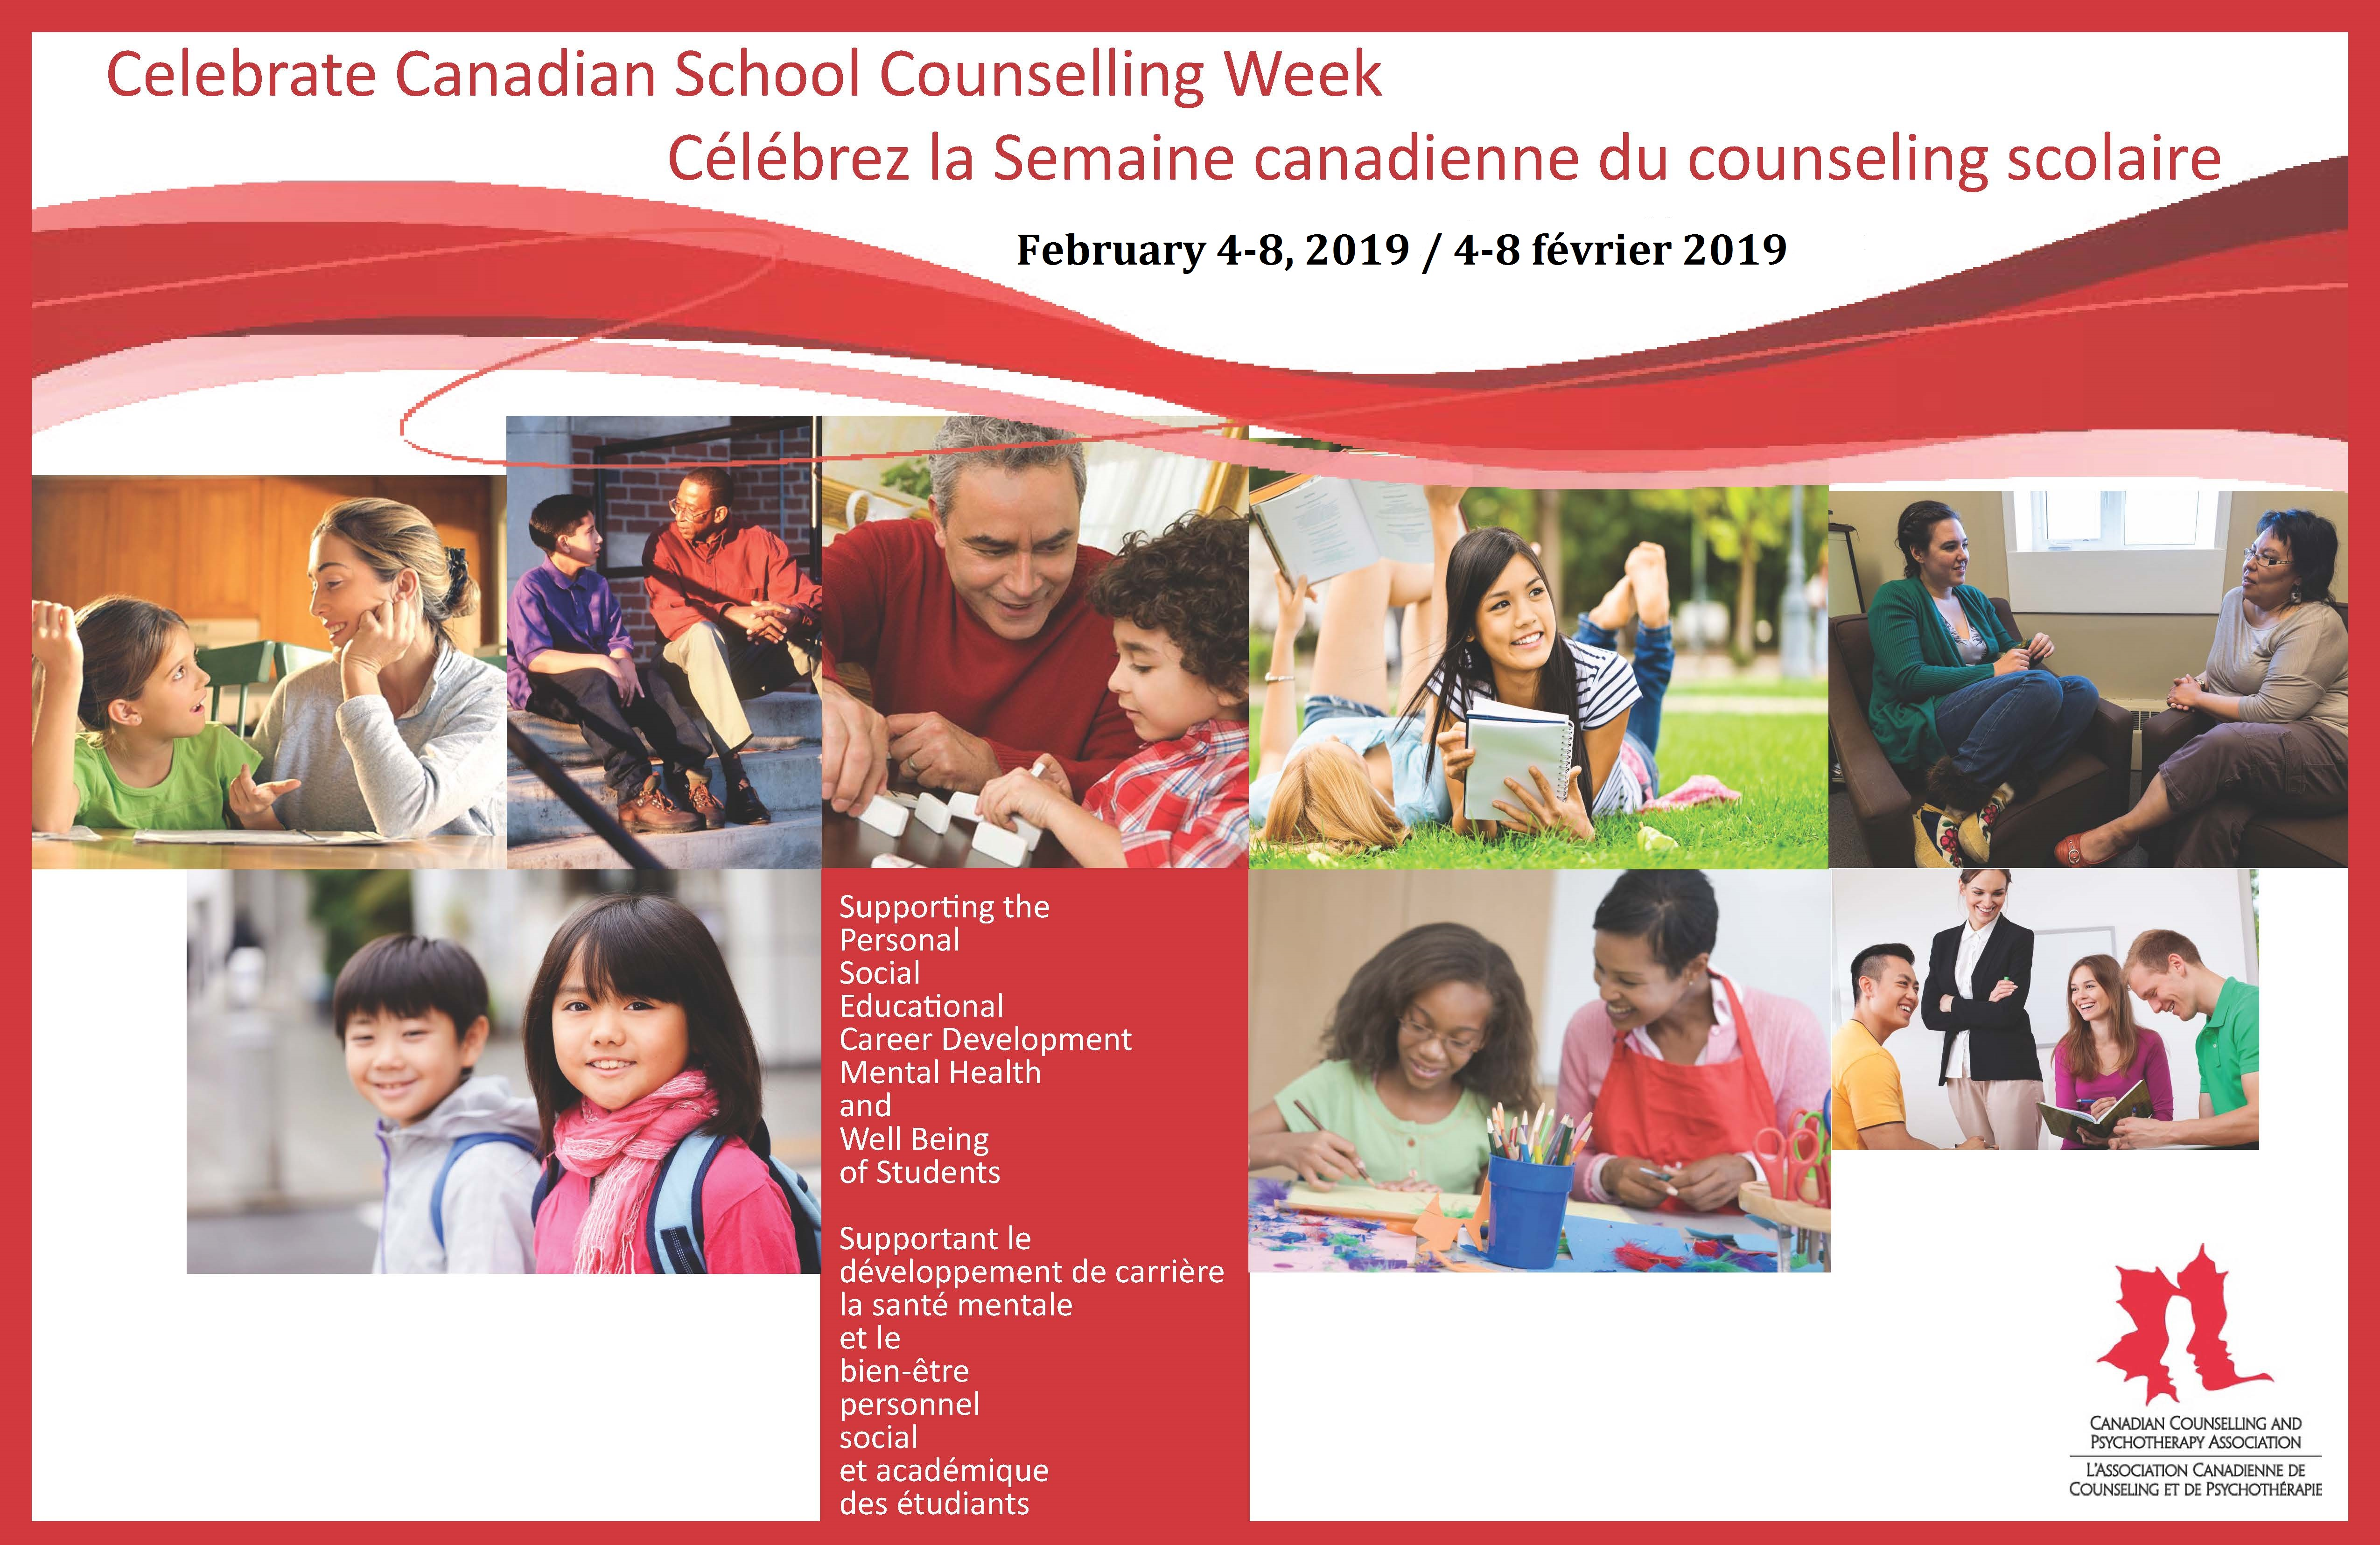 School Counsellors Canadian Counselling And Psychotherapy Association